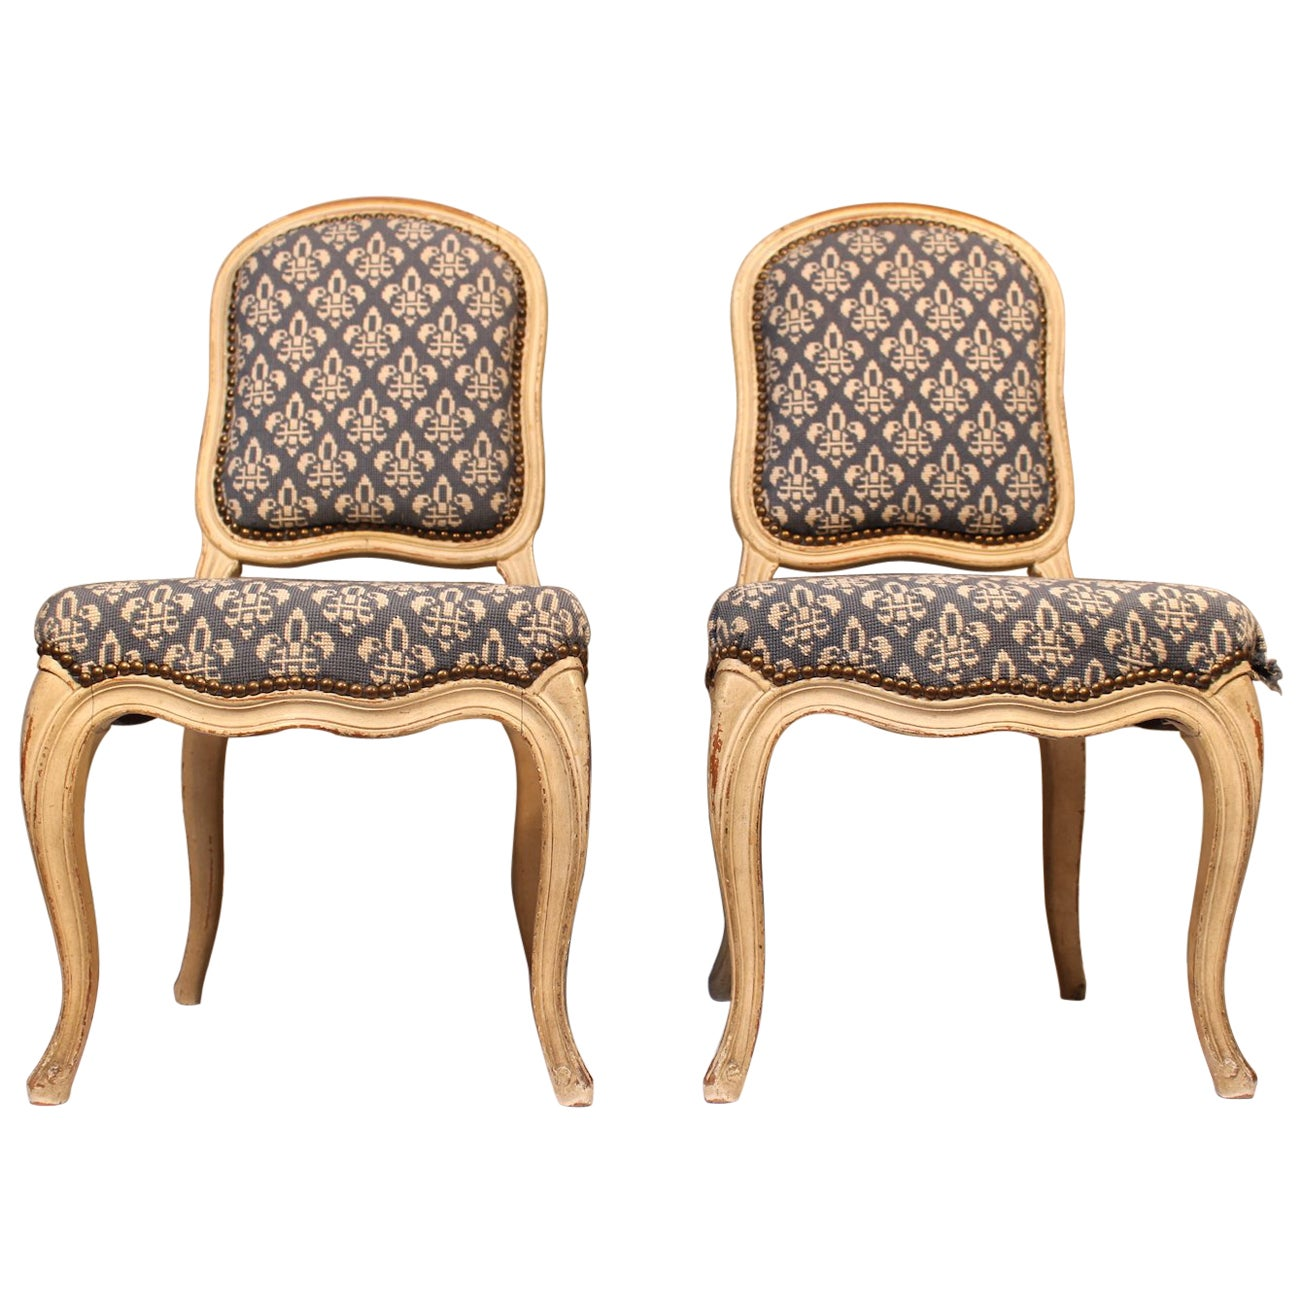 Pair of French Louis XV Painted Children's Chairs